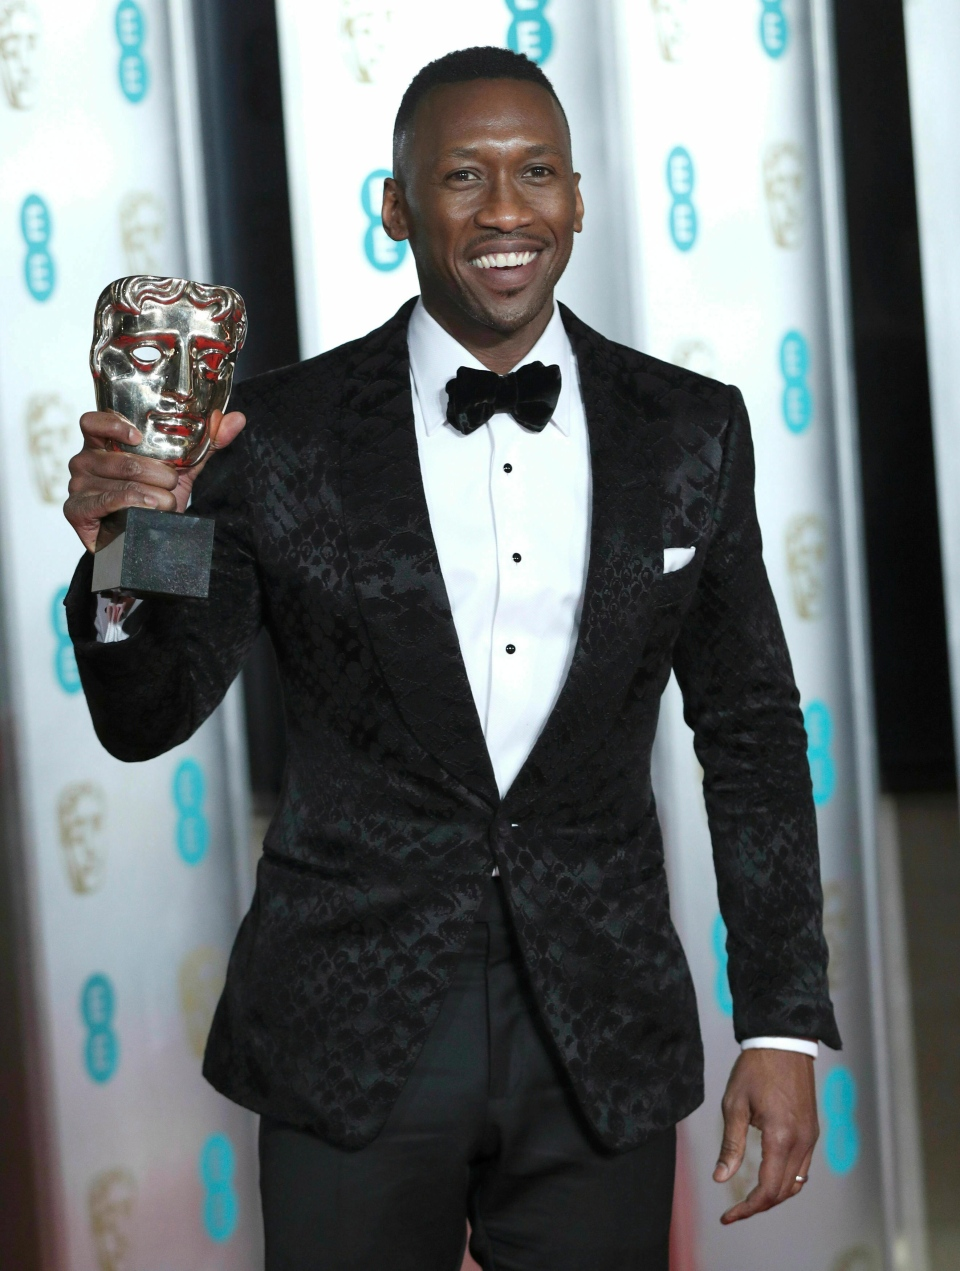 Mahershala Ali with his Best Actor in a Supporting Role Bafta for Green Book attending the after show party for the EE British Academy Film Awards at the Grosvenor House Hotel in central London, Sunday February 10, 2019. (Jonathan Brady/PA via AP)